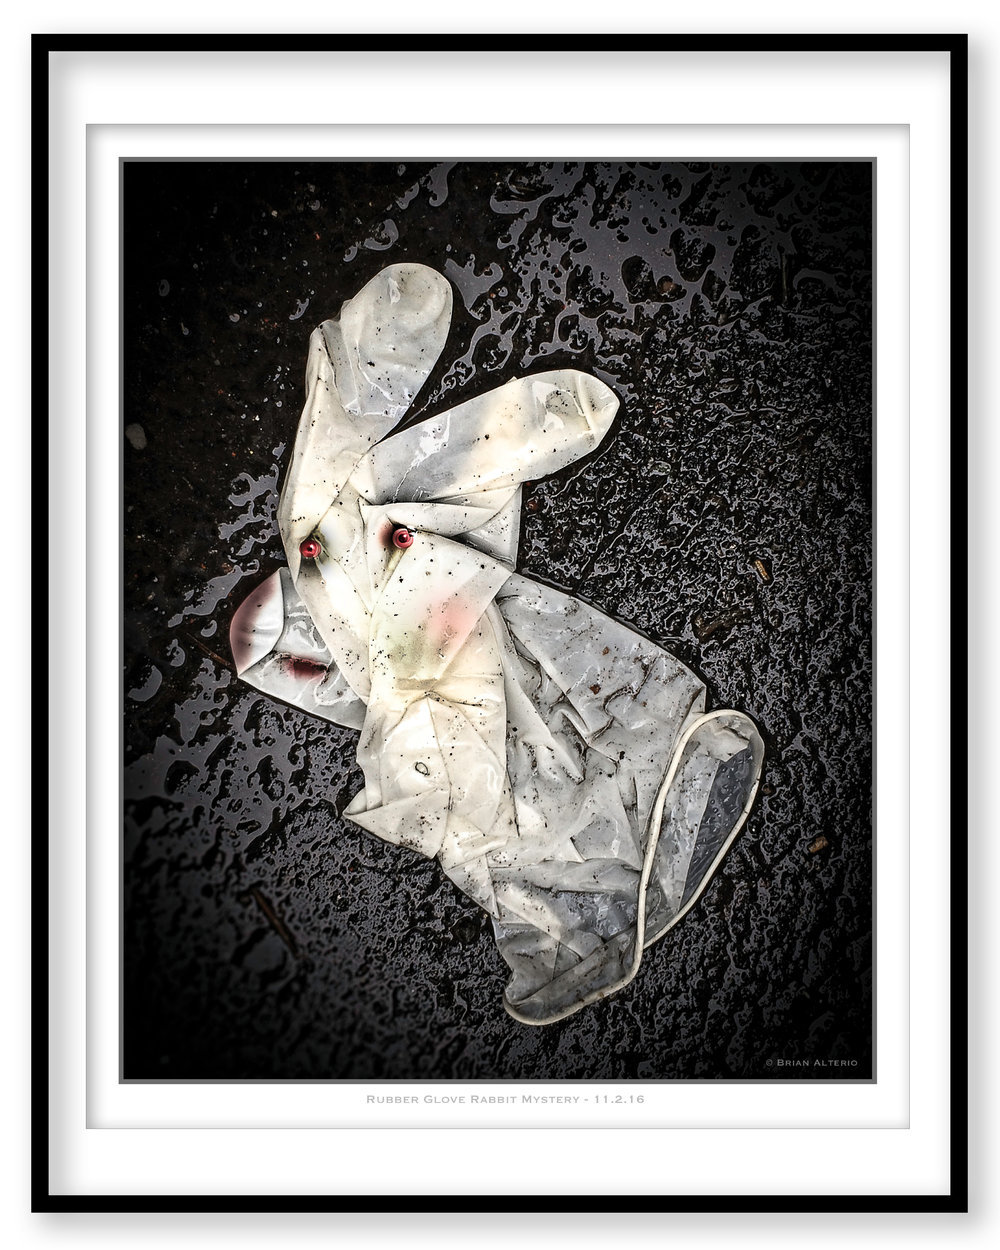 Rubber Glove Rabbit Mystery - 11.2.16 - Framed.jpg